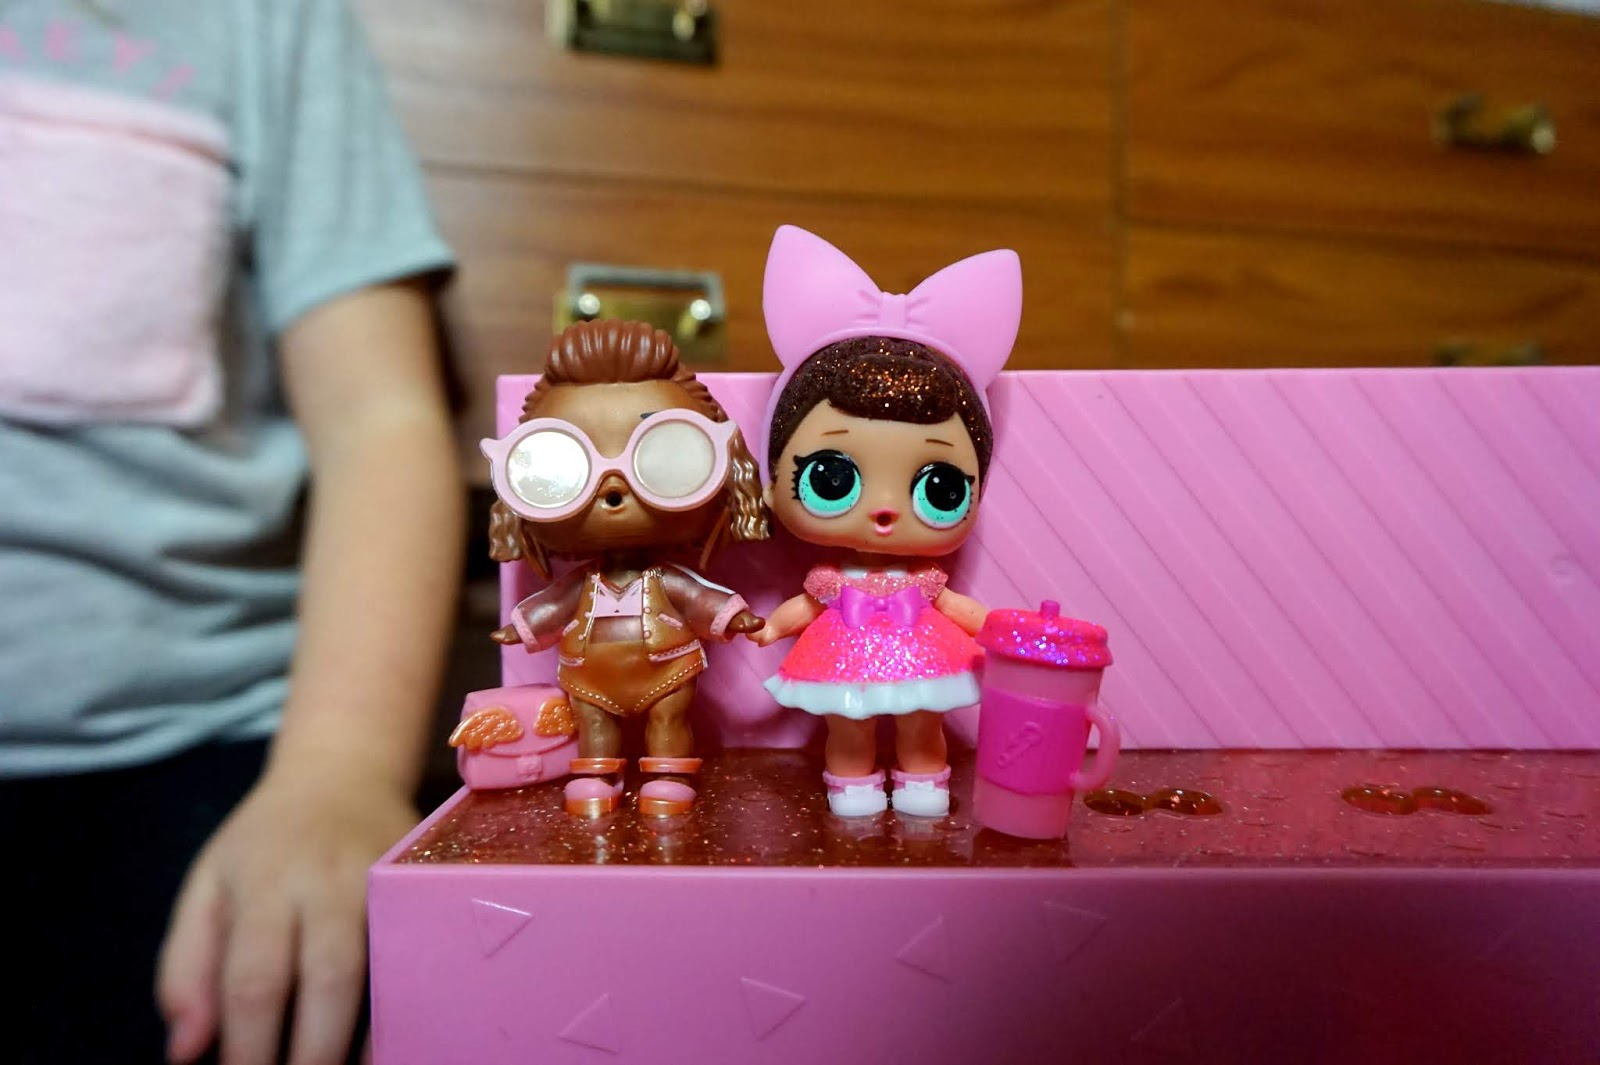 Lol Surprise Pop Up Store 3 In 1 Playset Review Life As Mum